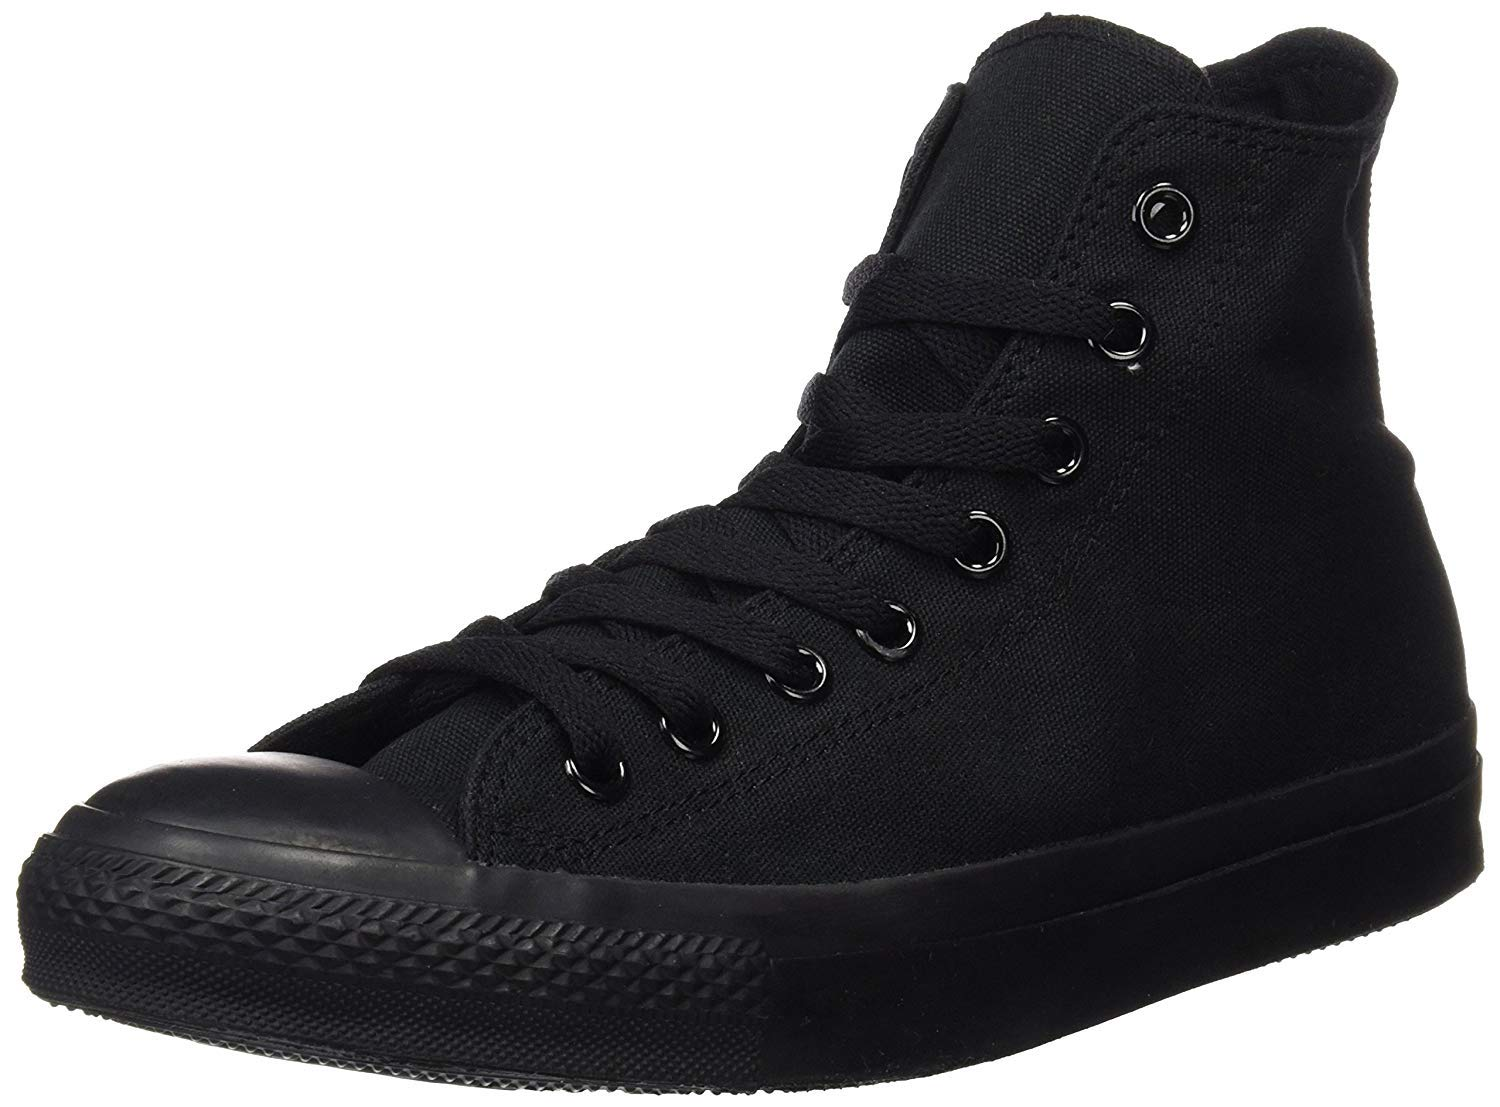 Converse Mens Chuck Taylor All Star High Top, 4.5 D(M) US, Black Monochrome by Converse (Image #1)